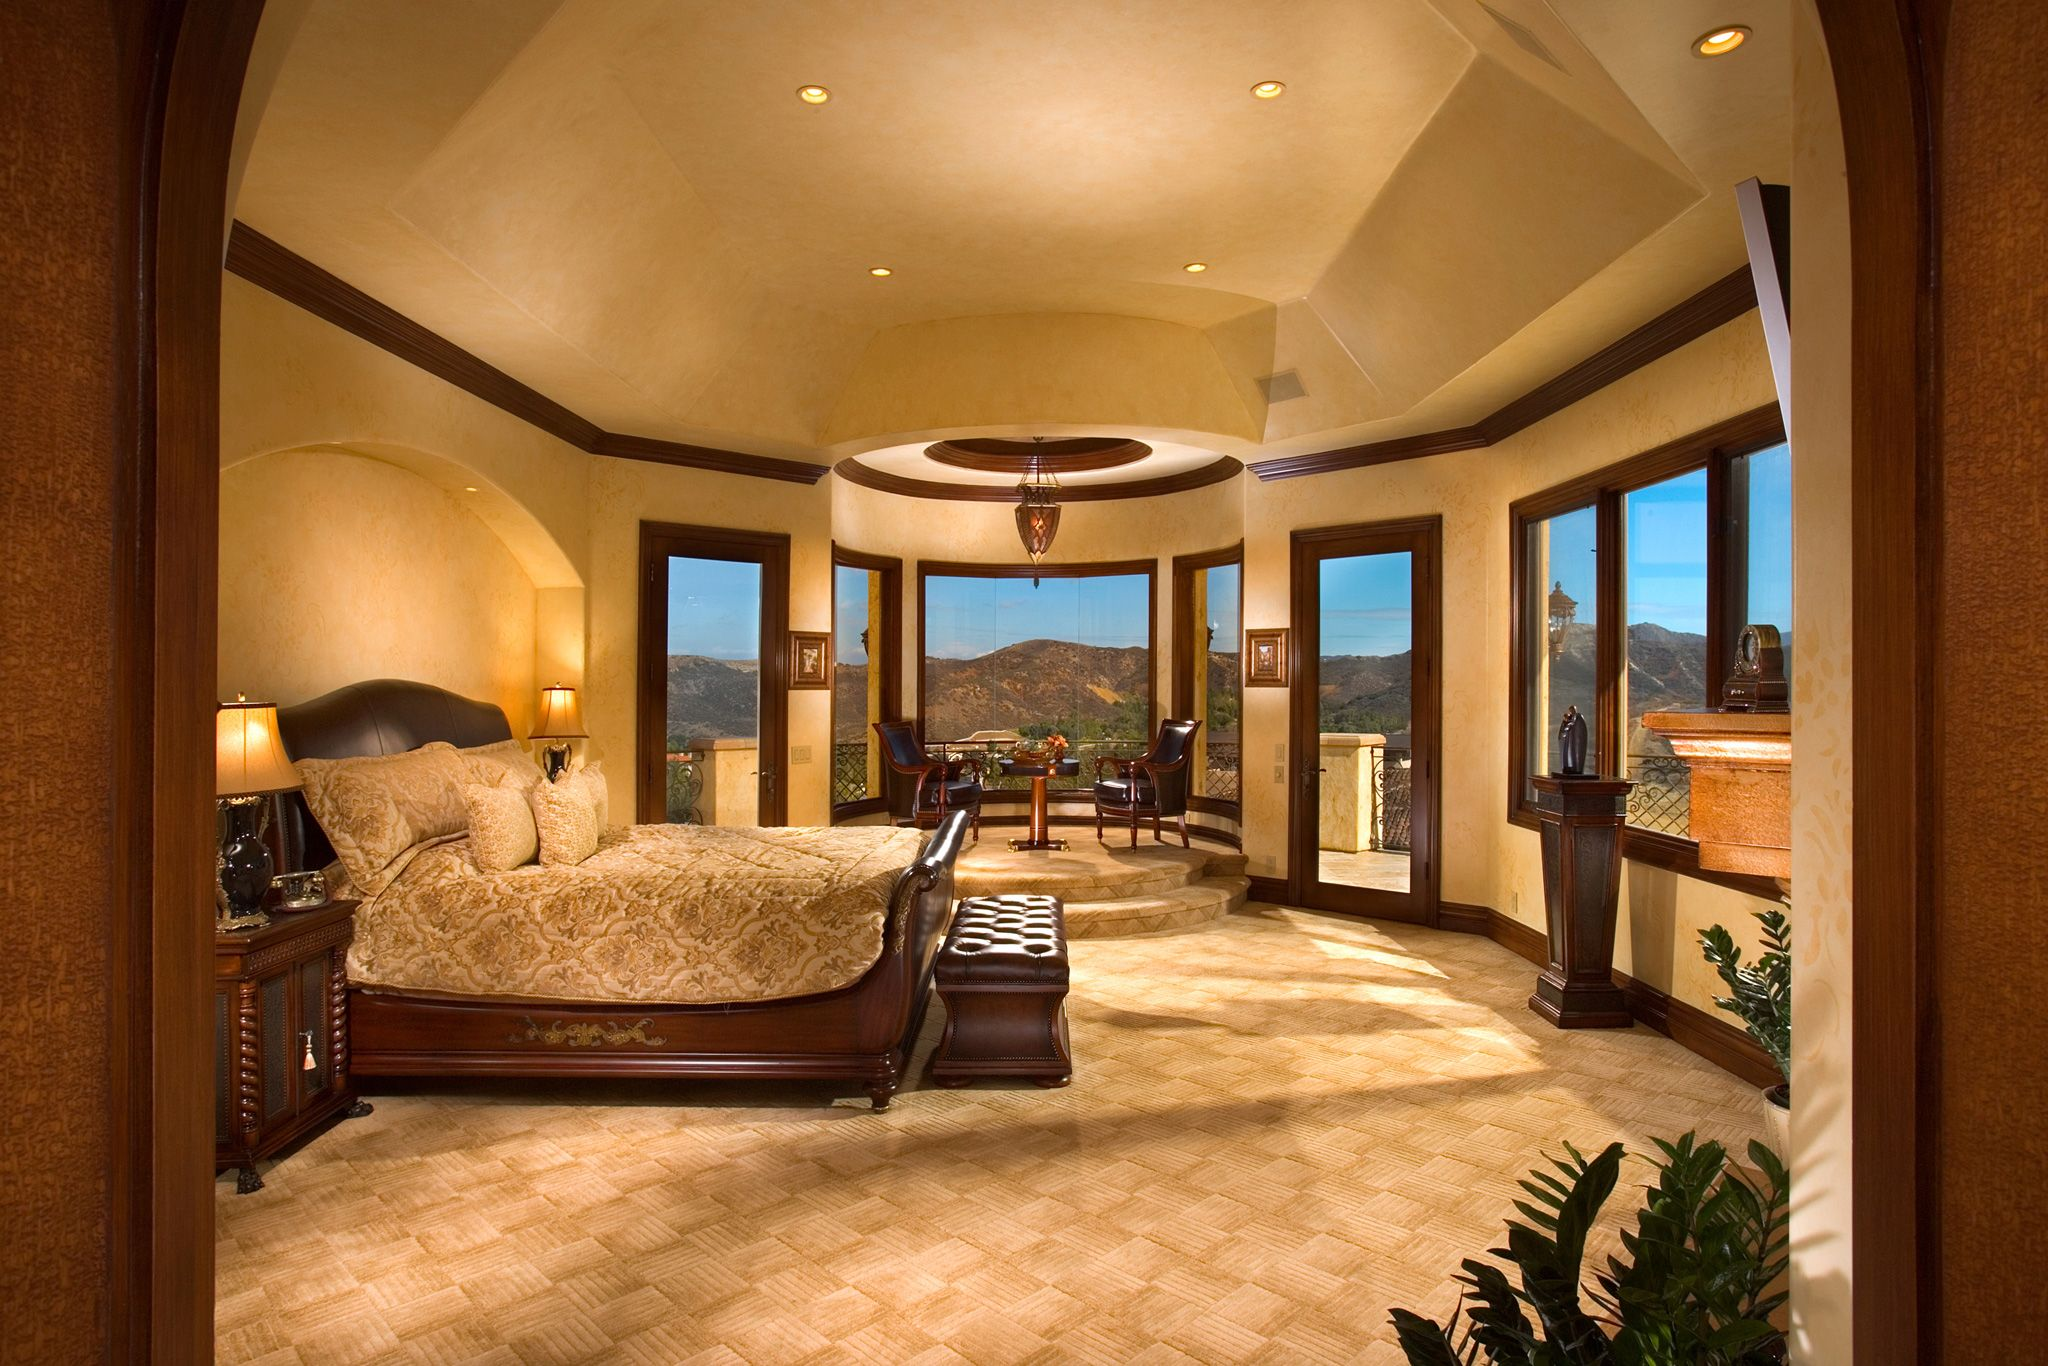 21 incredible master bedrooms design ideas luxury master for Pictures of master bedroom designs